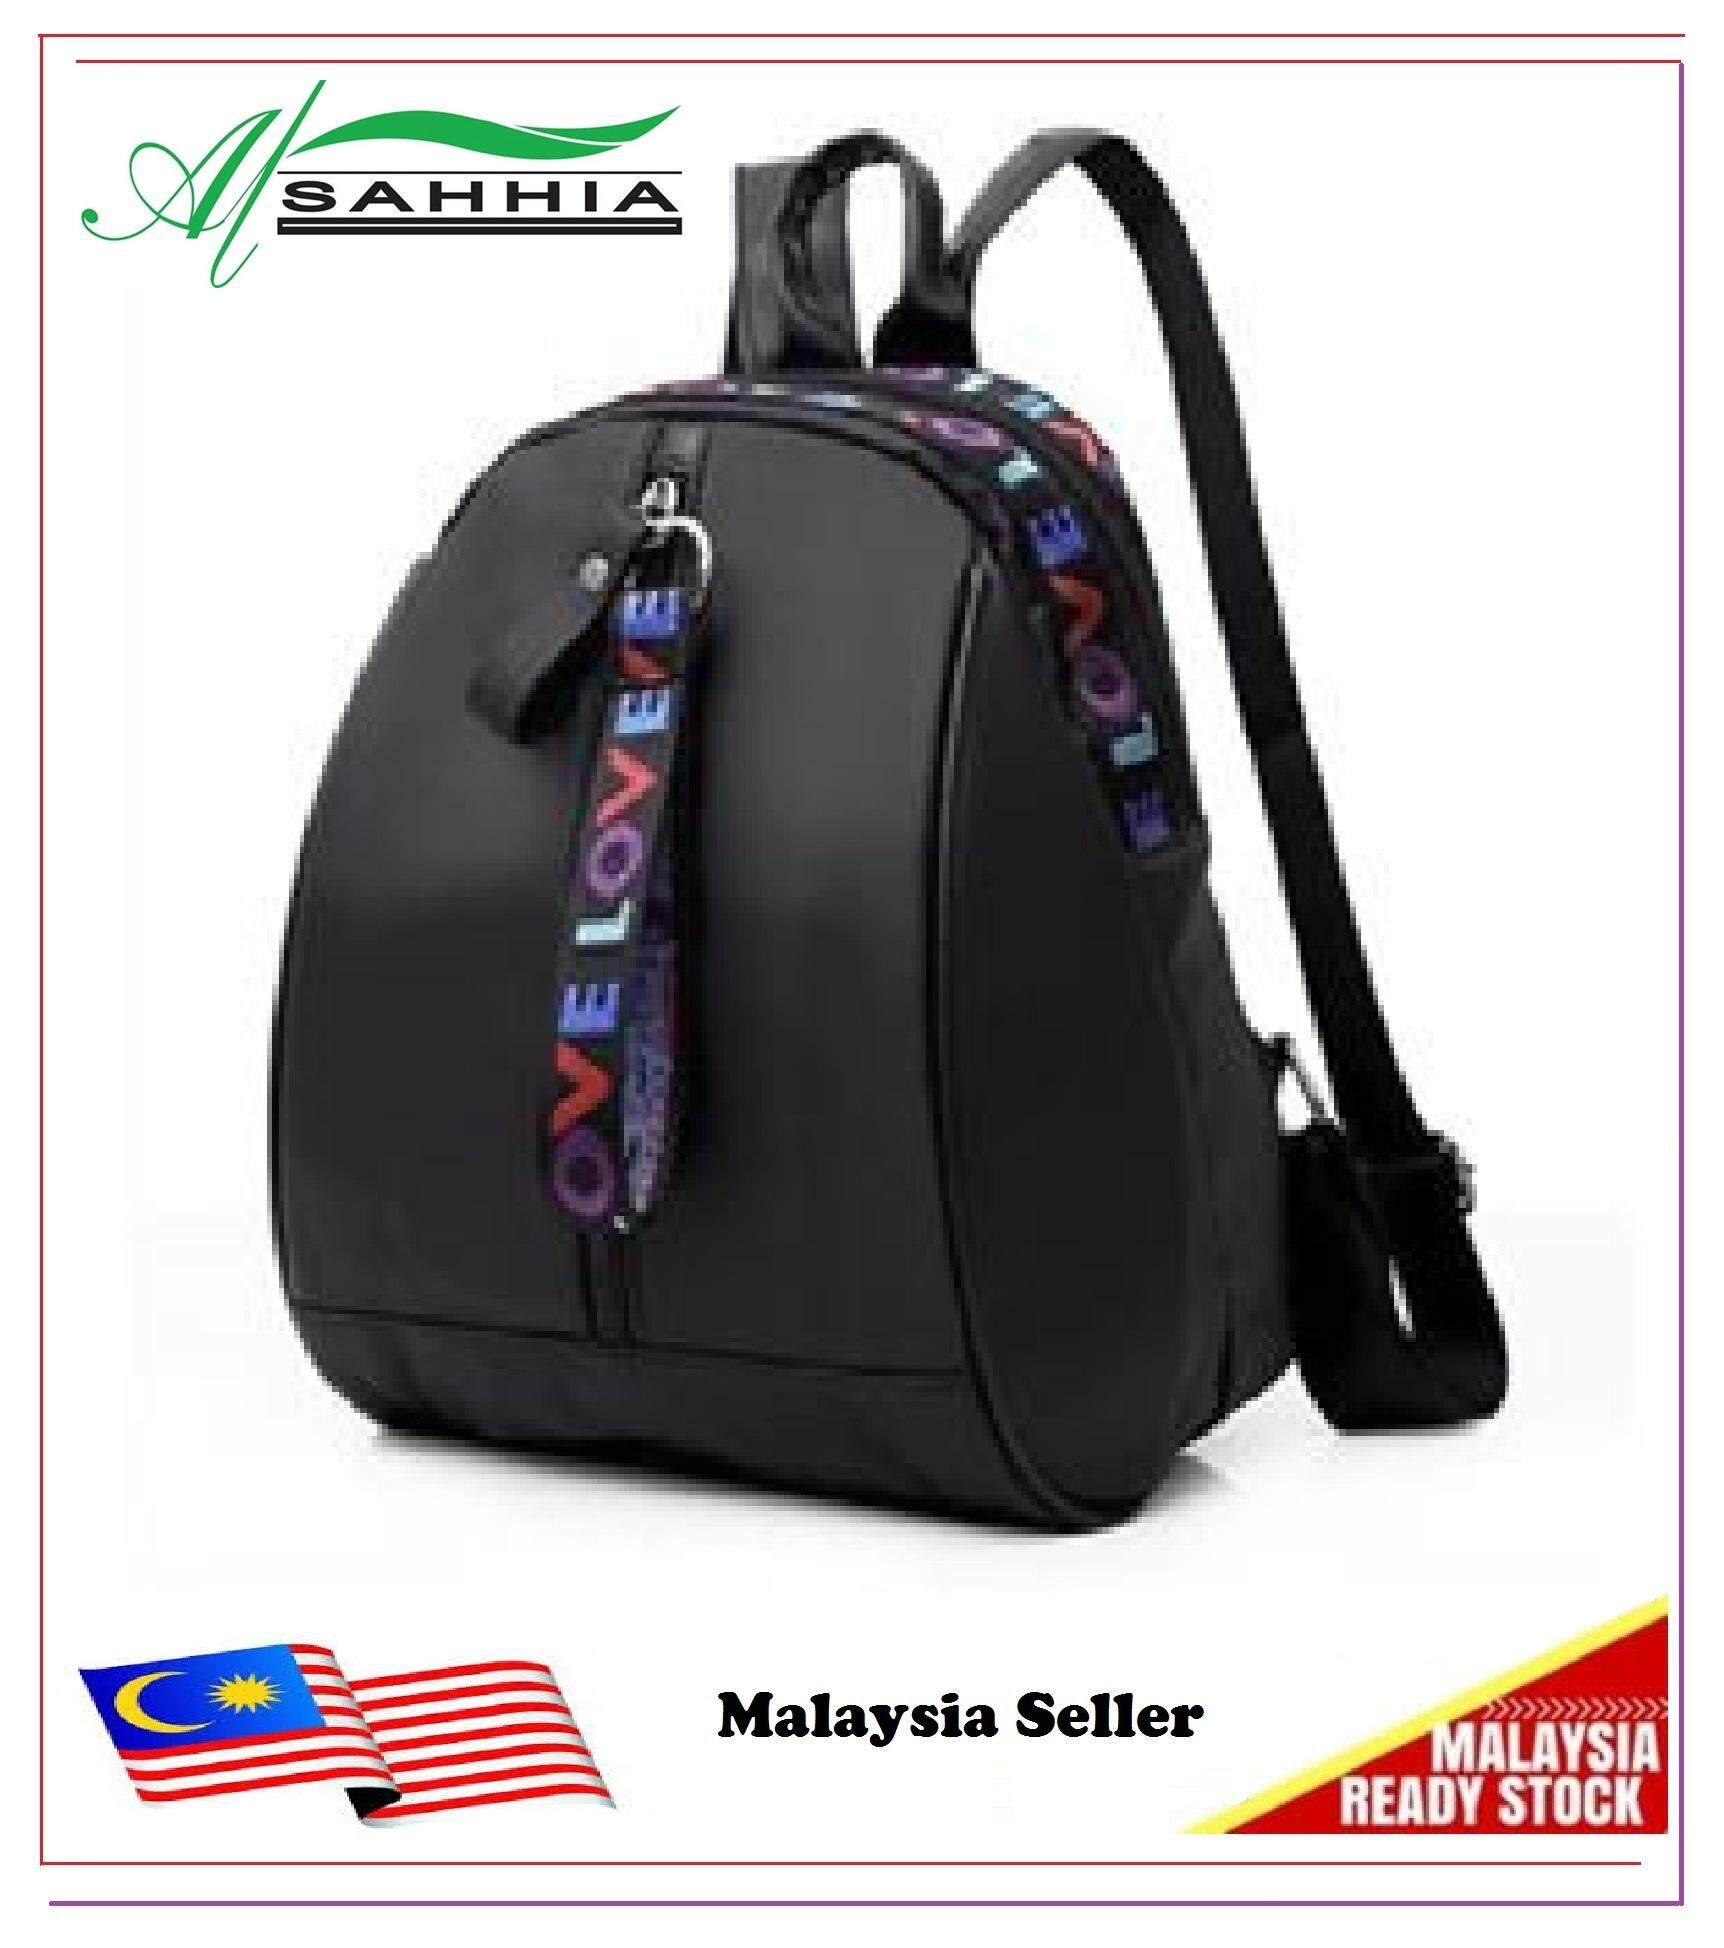 2c7dc5ff61 Al Sahhia Ready Stock Fashion Women Nylon Backpack Waterproof Large Special  Zip